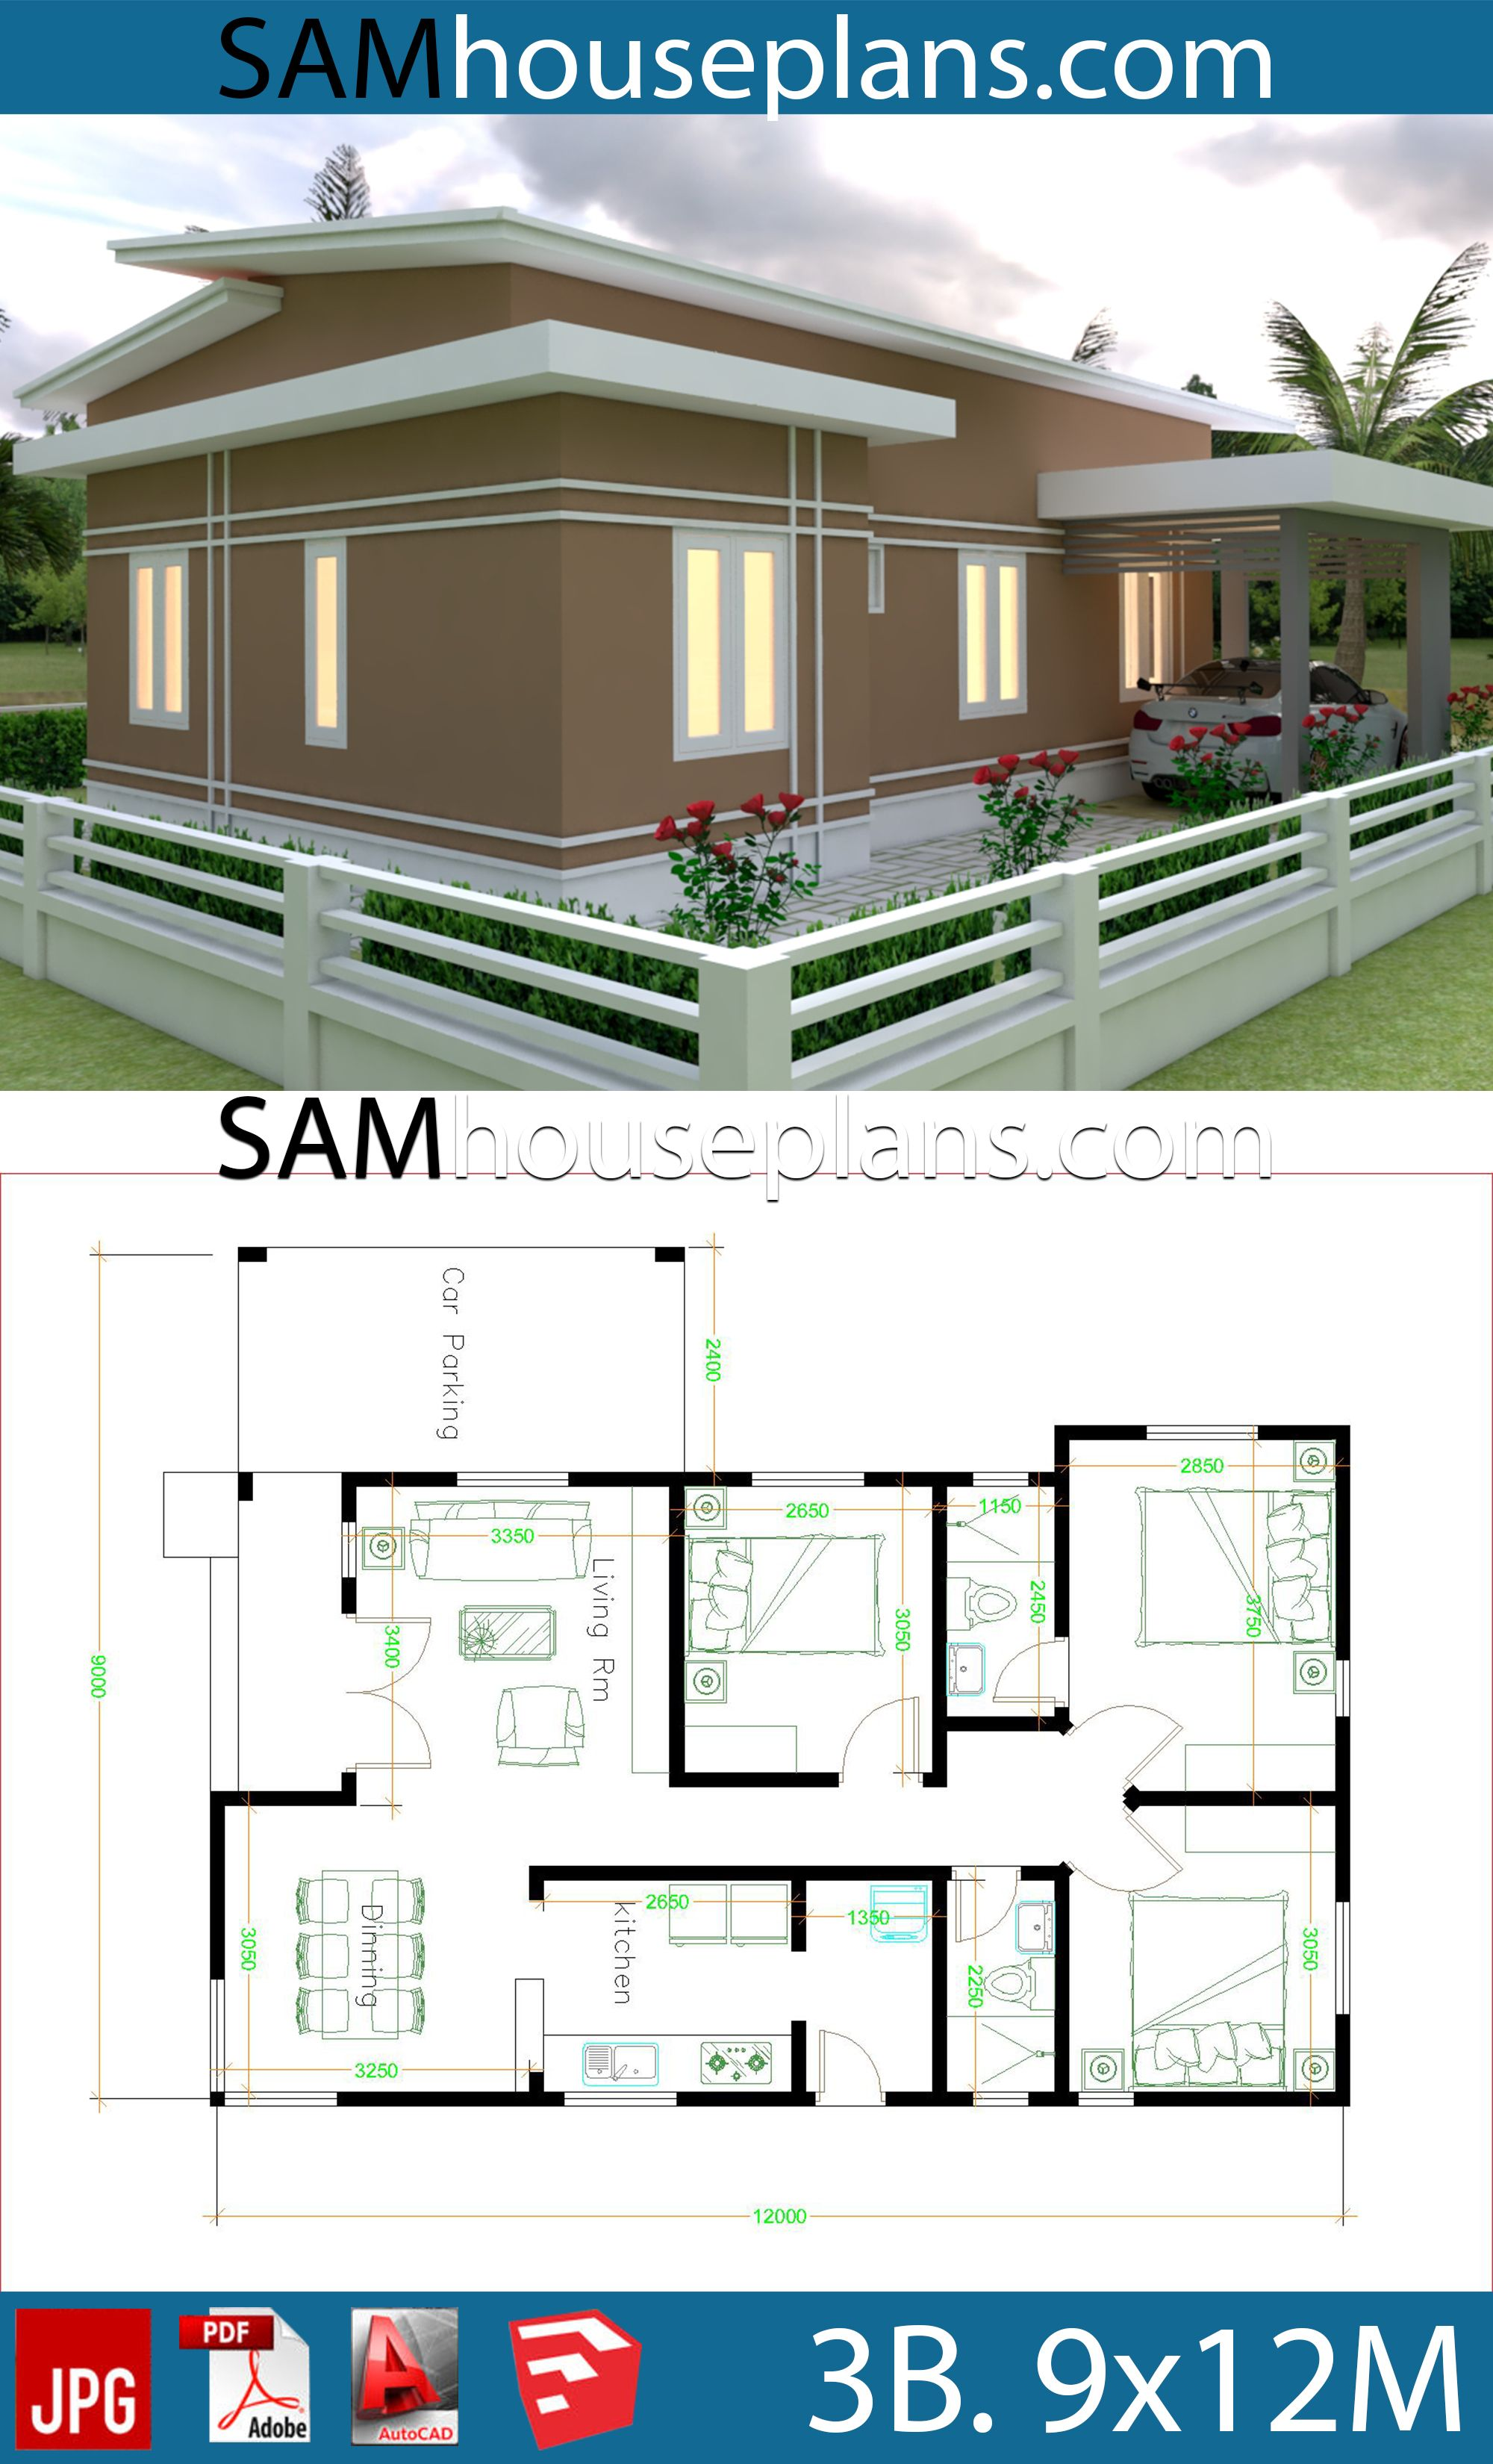 House Plans 9x12 With 3 Bedrooms Roof Tiles Sam House Plans House Plans Beautiful House Plans Small House Design Plans